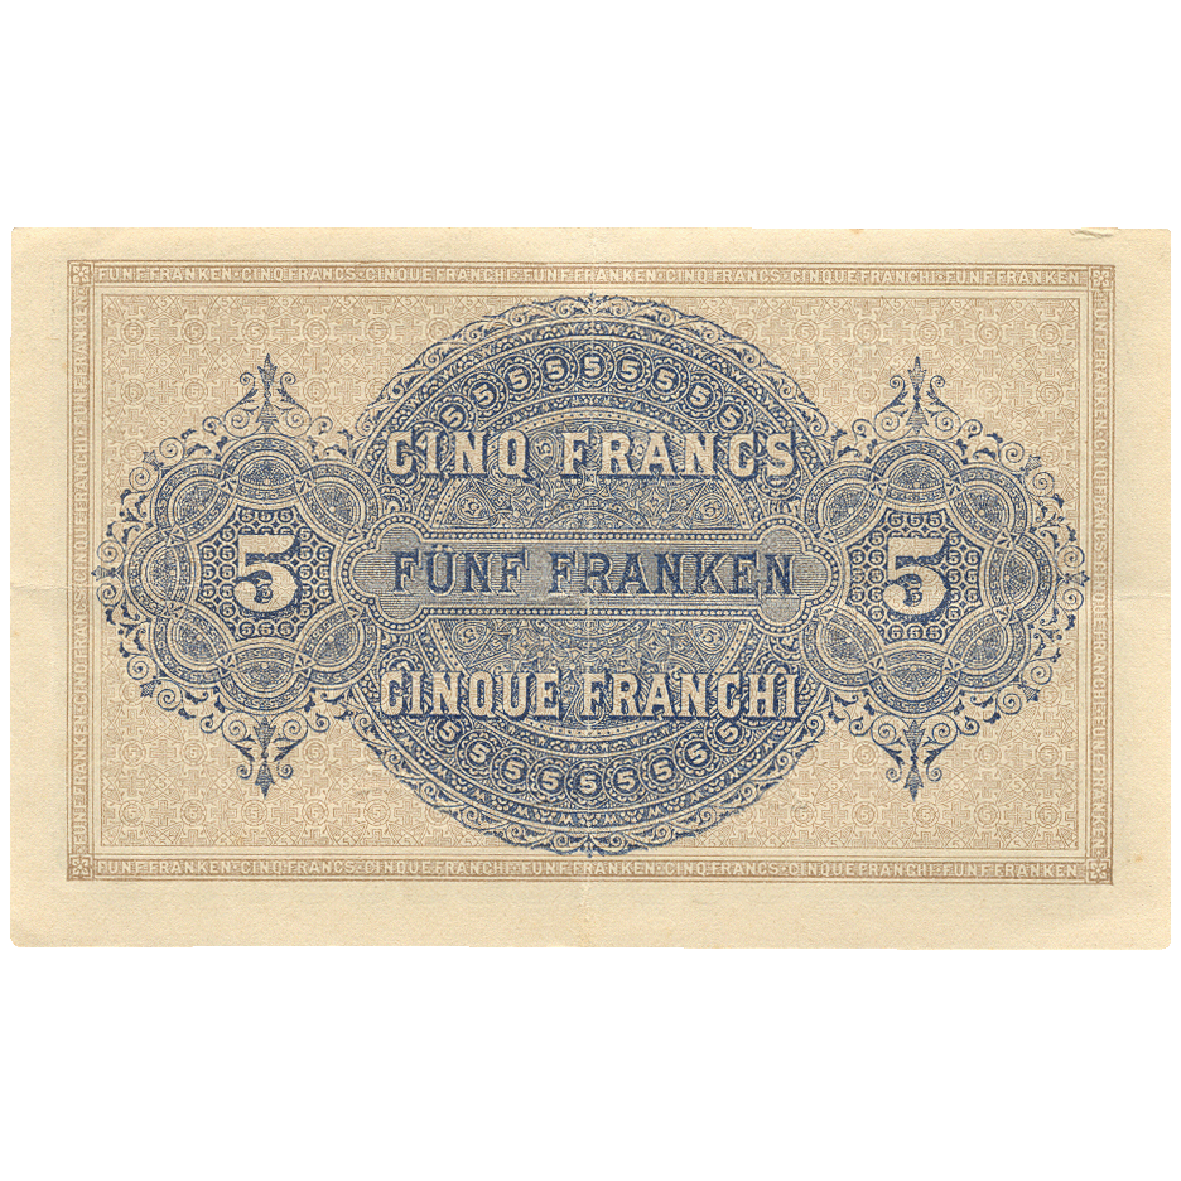 Swiss Confederation, Cashier's Bill worth 5 Francs 1914 (in Circulation 1914-1926) (reverse)